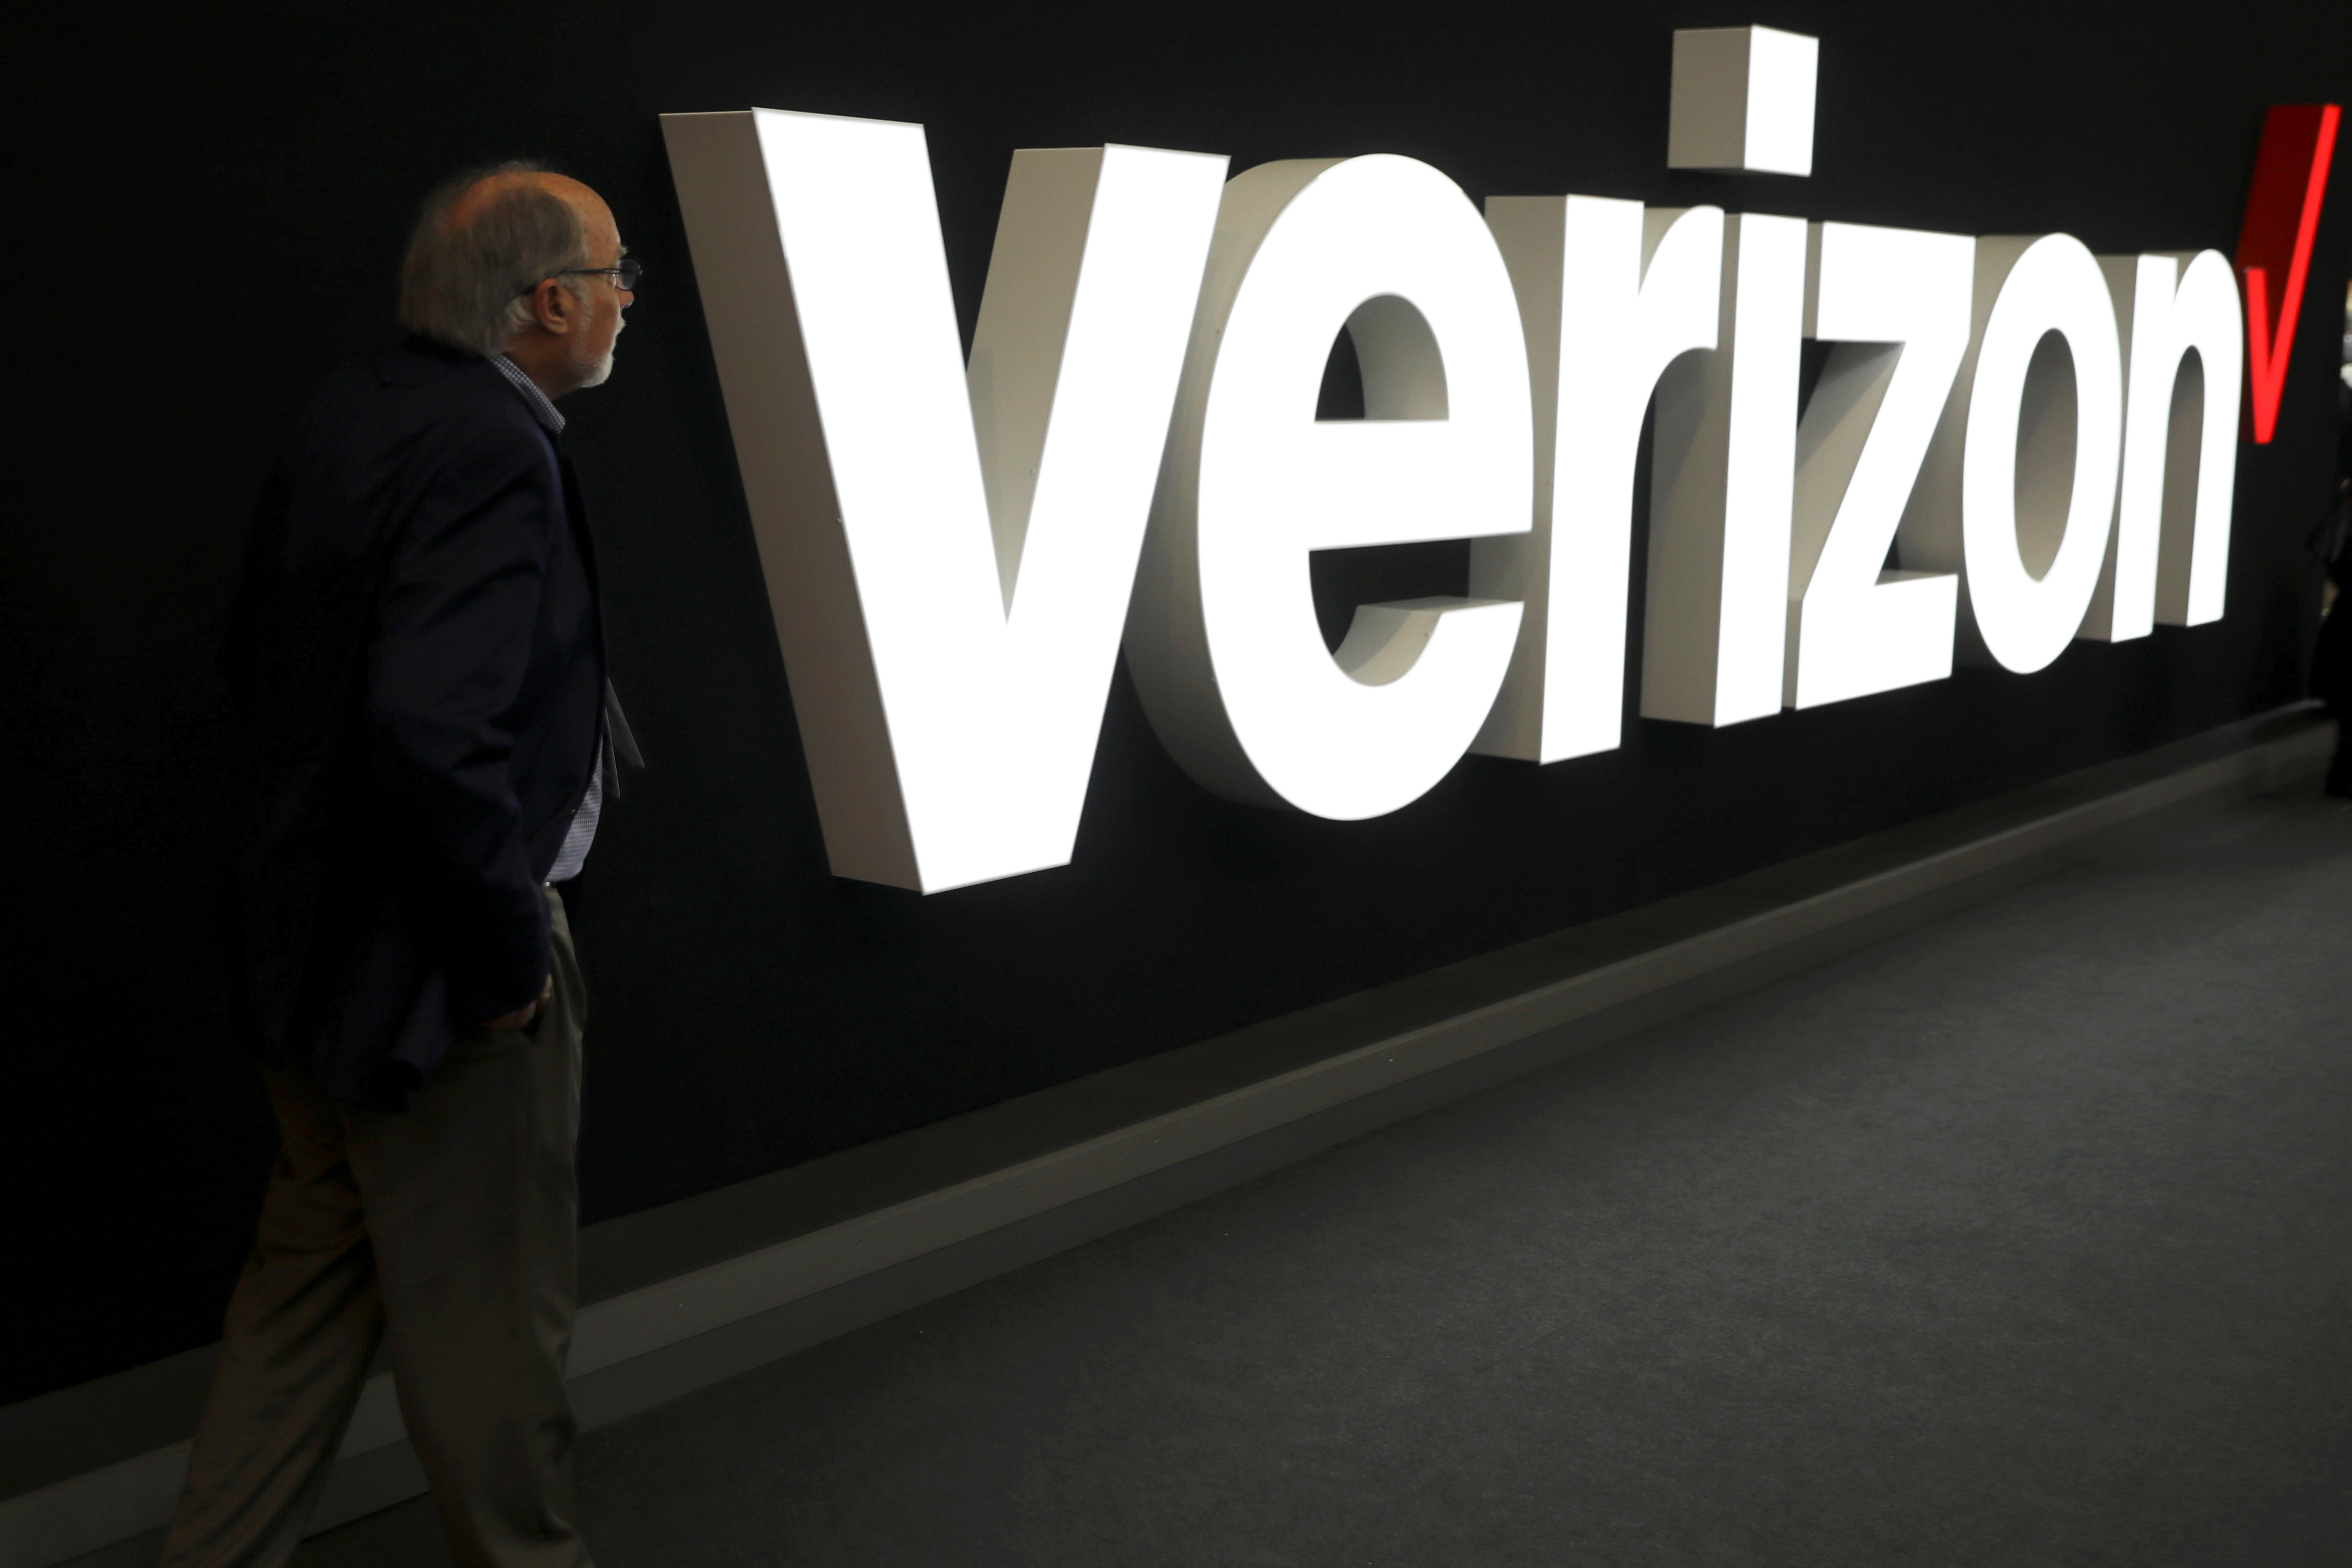 A man stands next to the logo of Verizon at the Mobile World Congress in Barcelona, Spain, February 26, 2019. REUTERS/Sergio Perez/File Photo